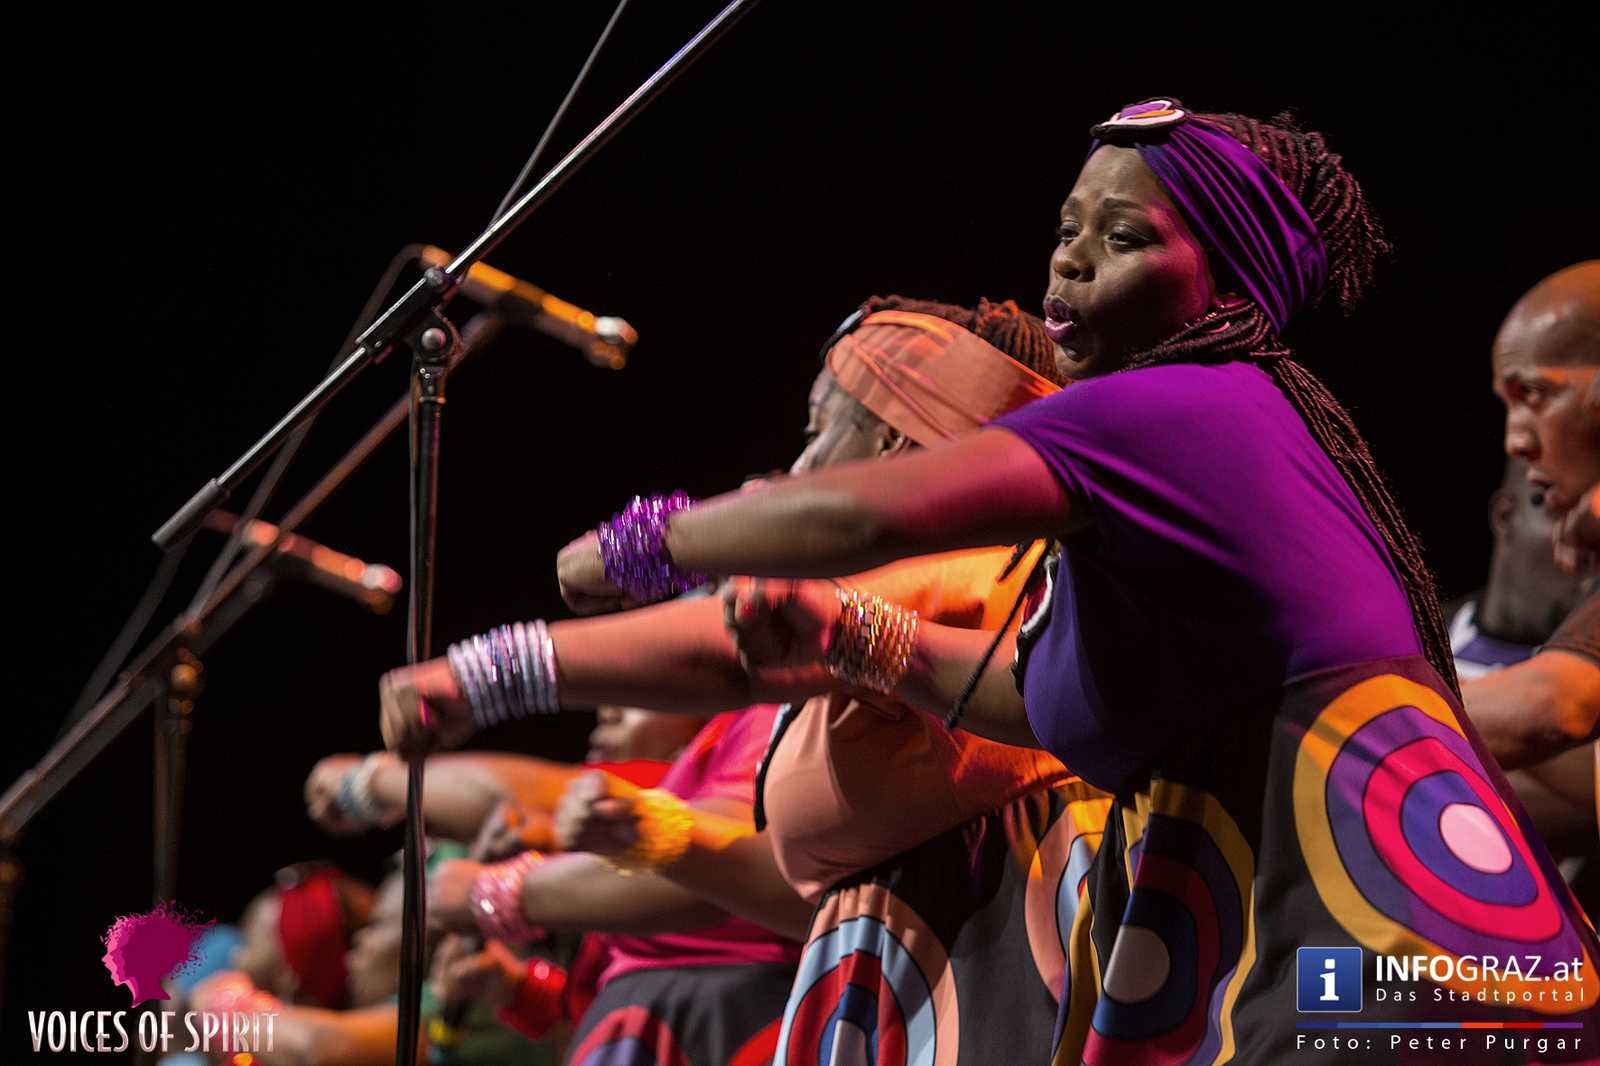 soweto gospel choir internationales chorfestival statdthalle graz voices of spirit eroeffnung festivals 2016 014